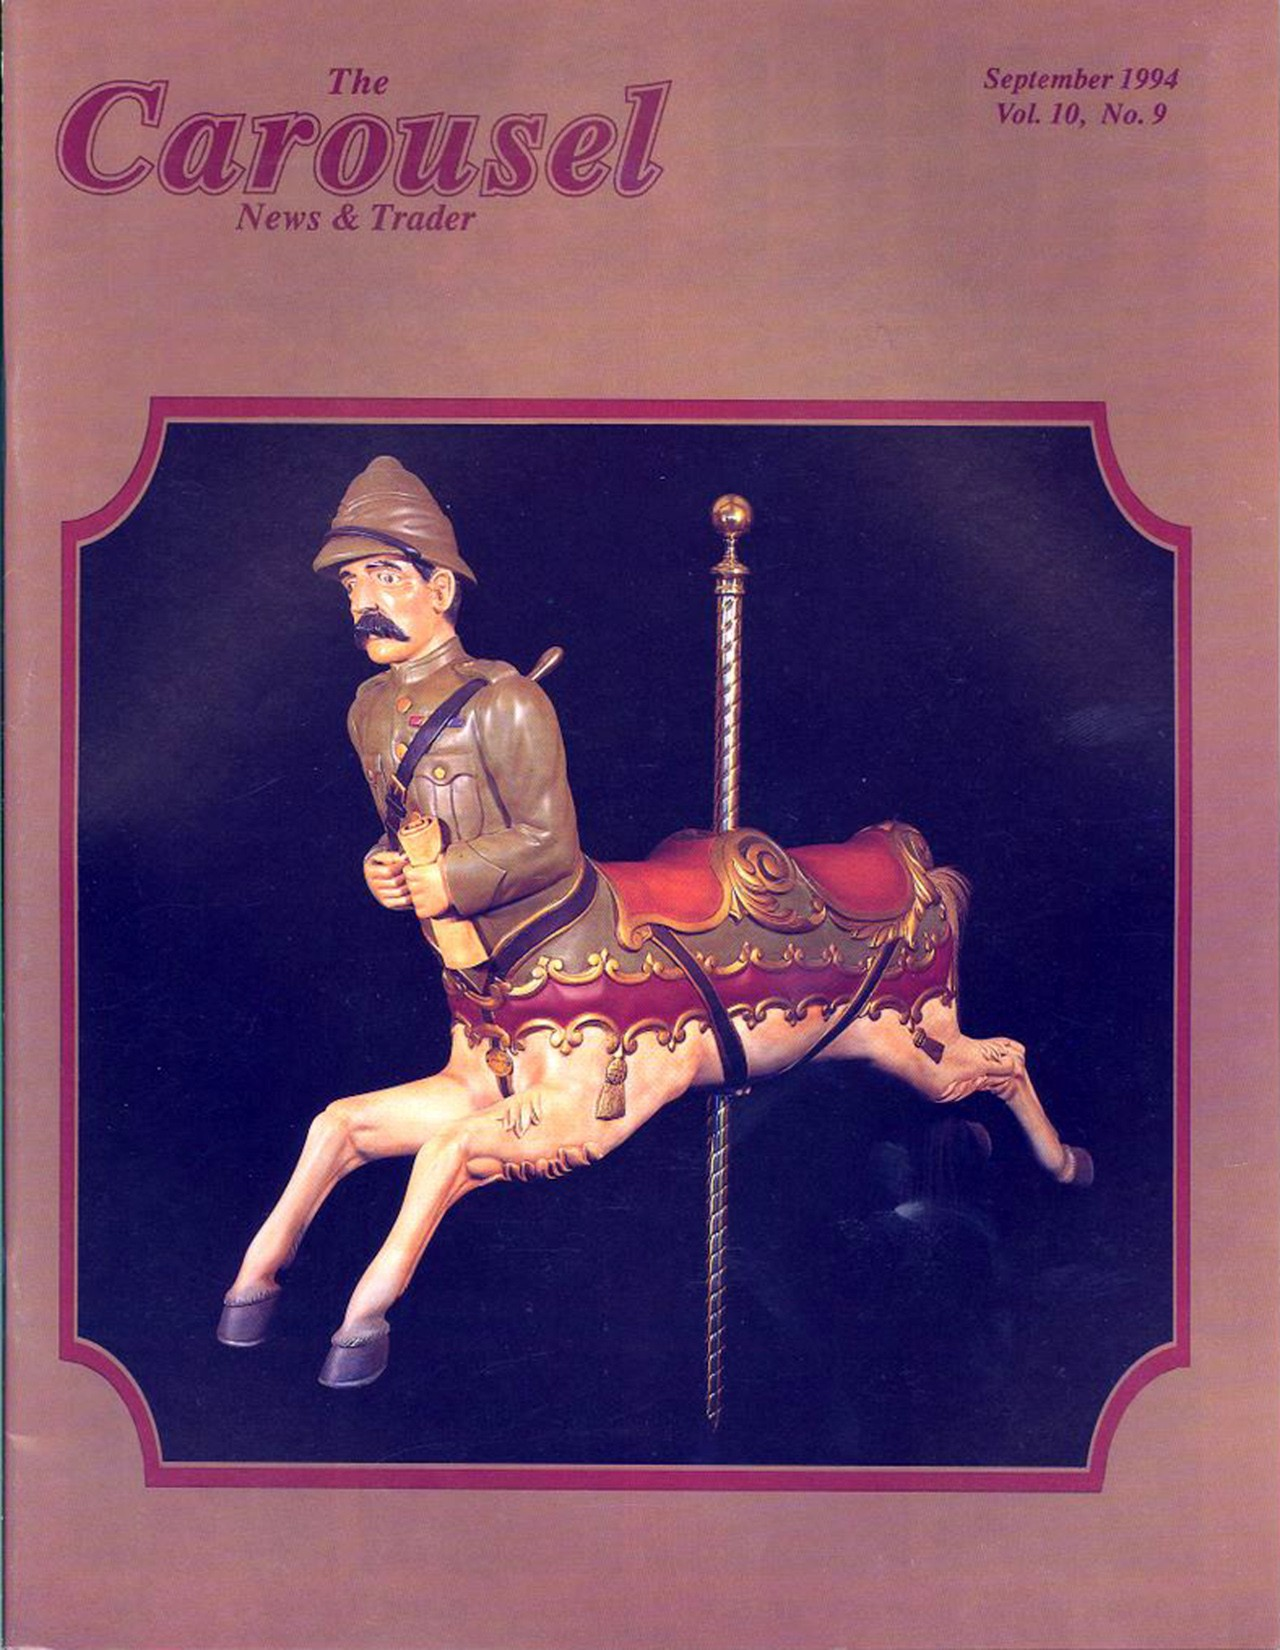 cnt_09_1994-English-Spooner-carousel-Centaur-Sir-Baden-Powell